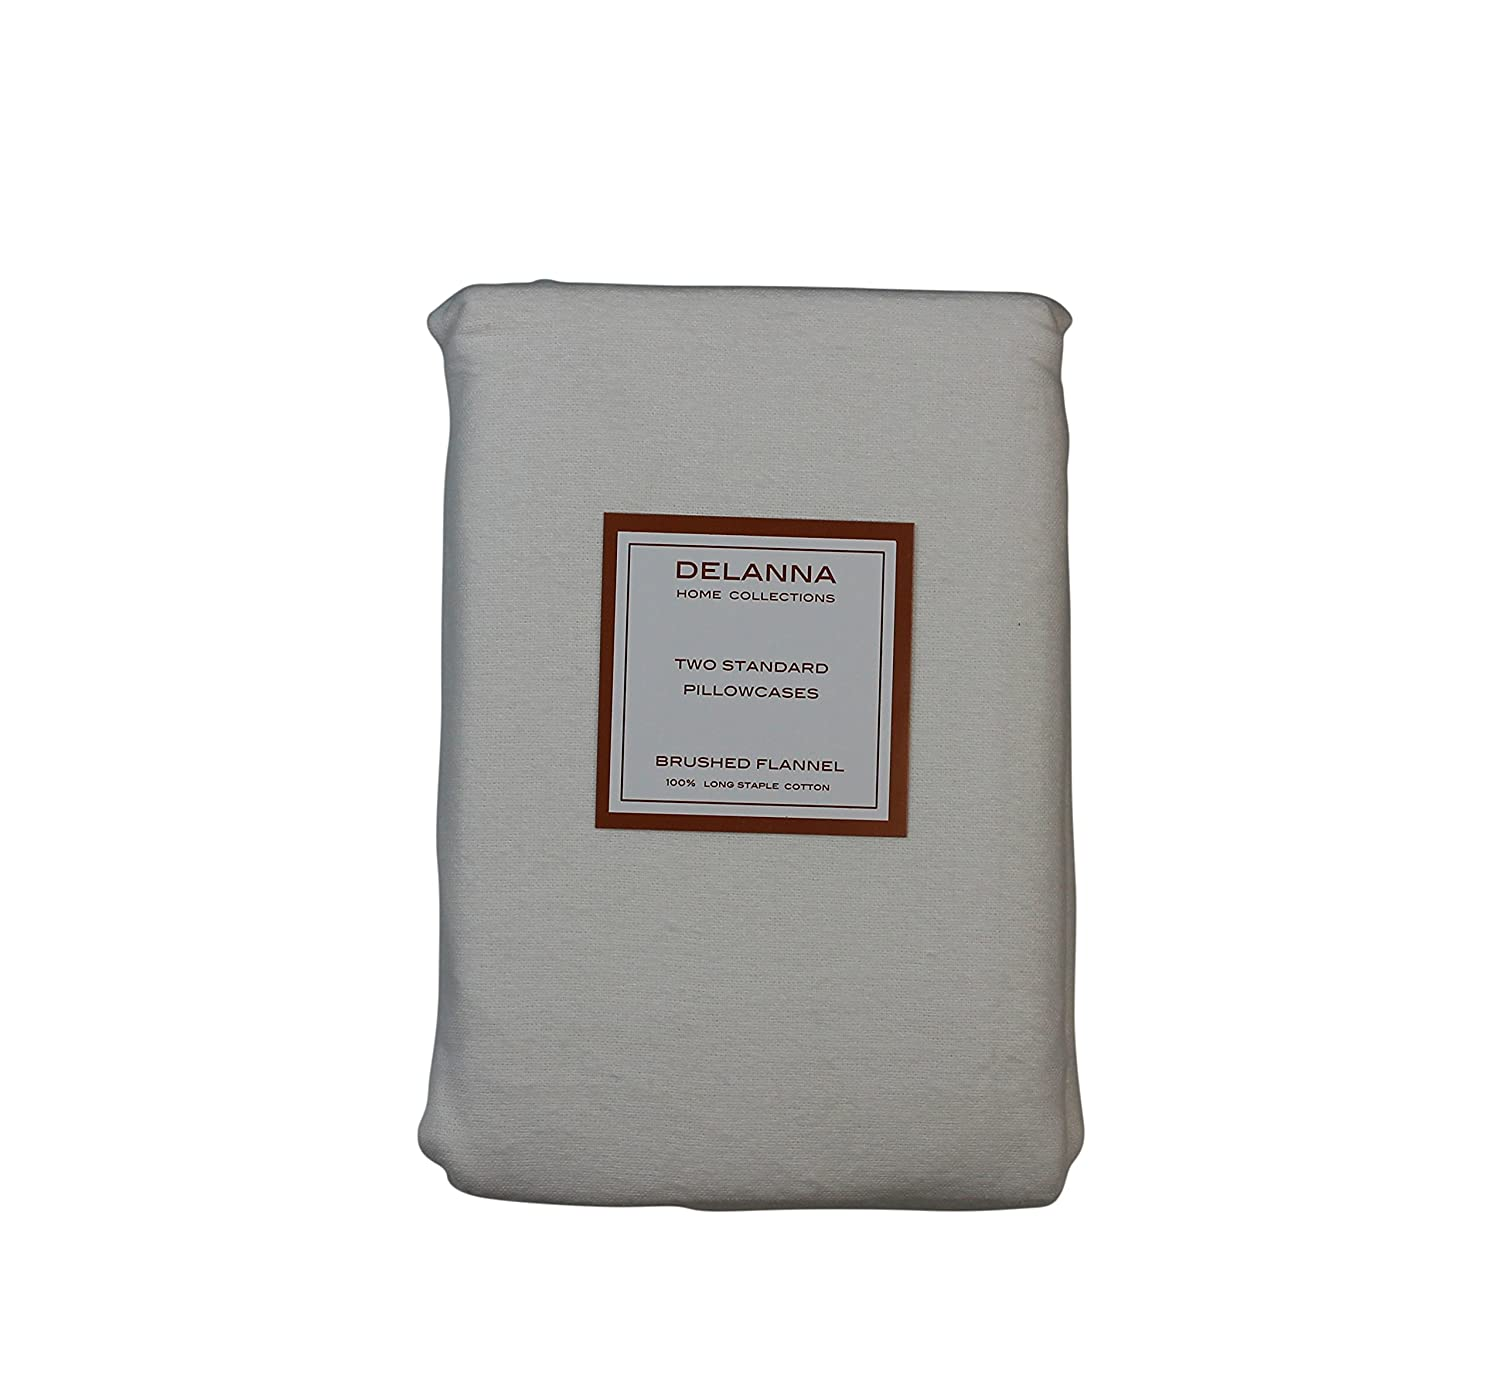 Amazon.com: FLANNEL PILLOWCASES by DELANNA, 100% Cotton, Brushed on ...